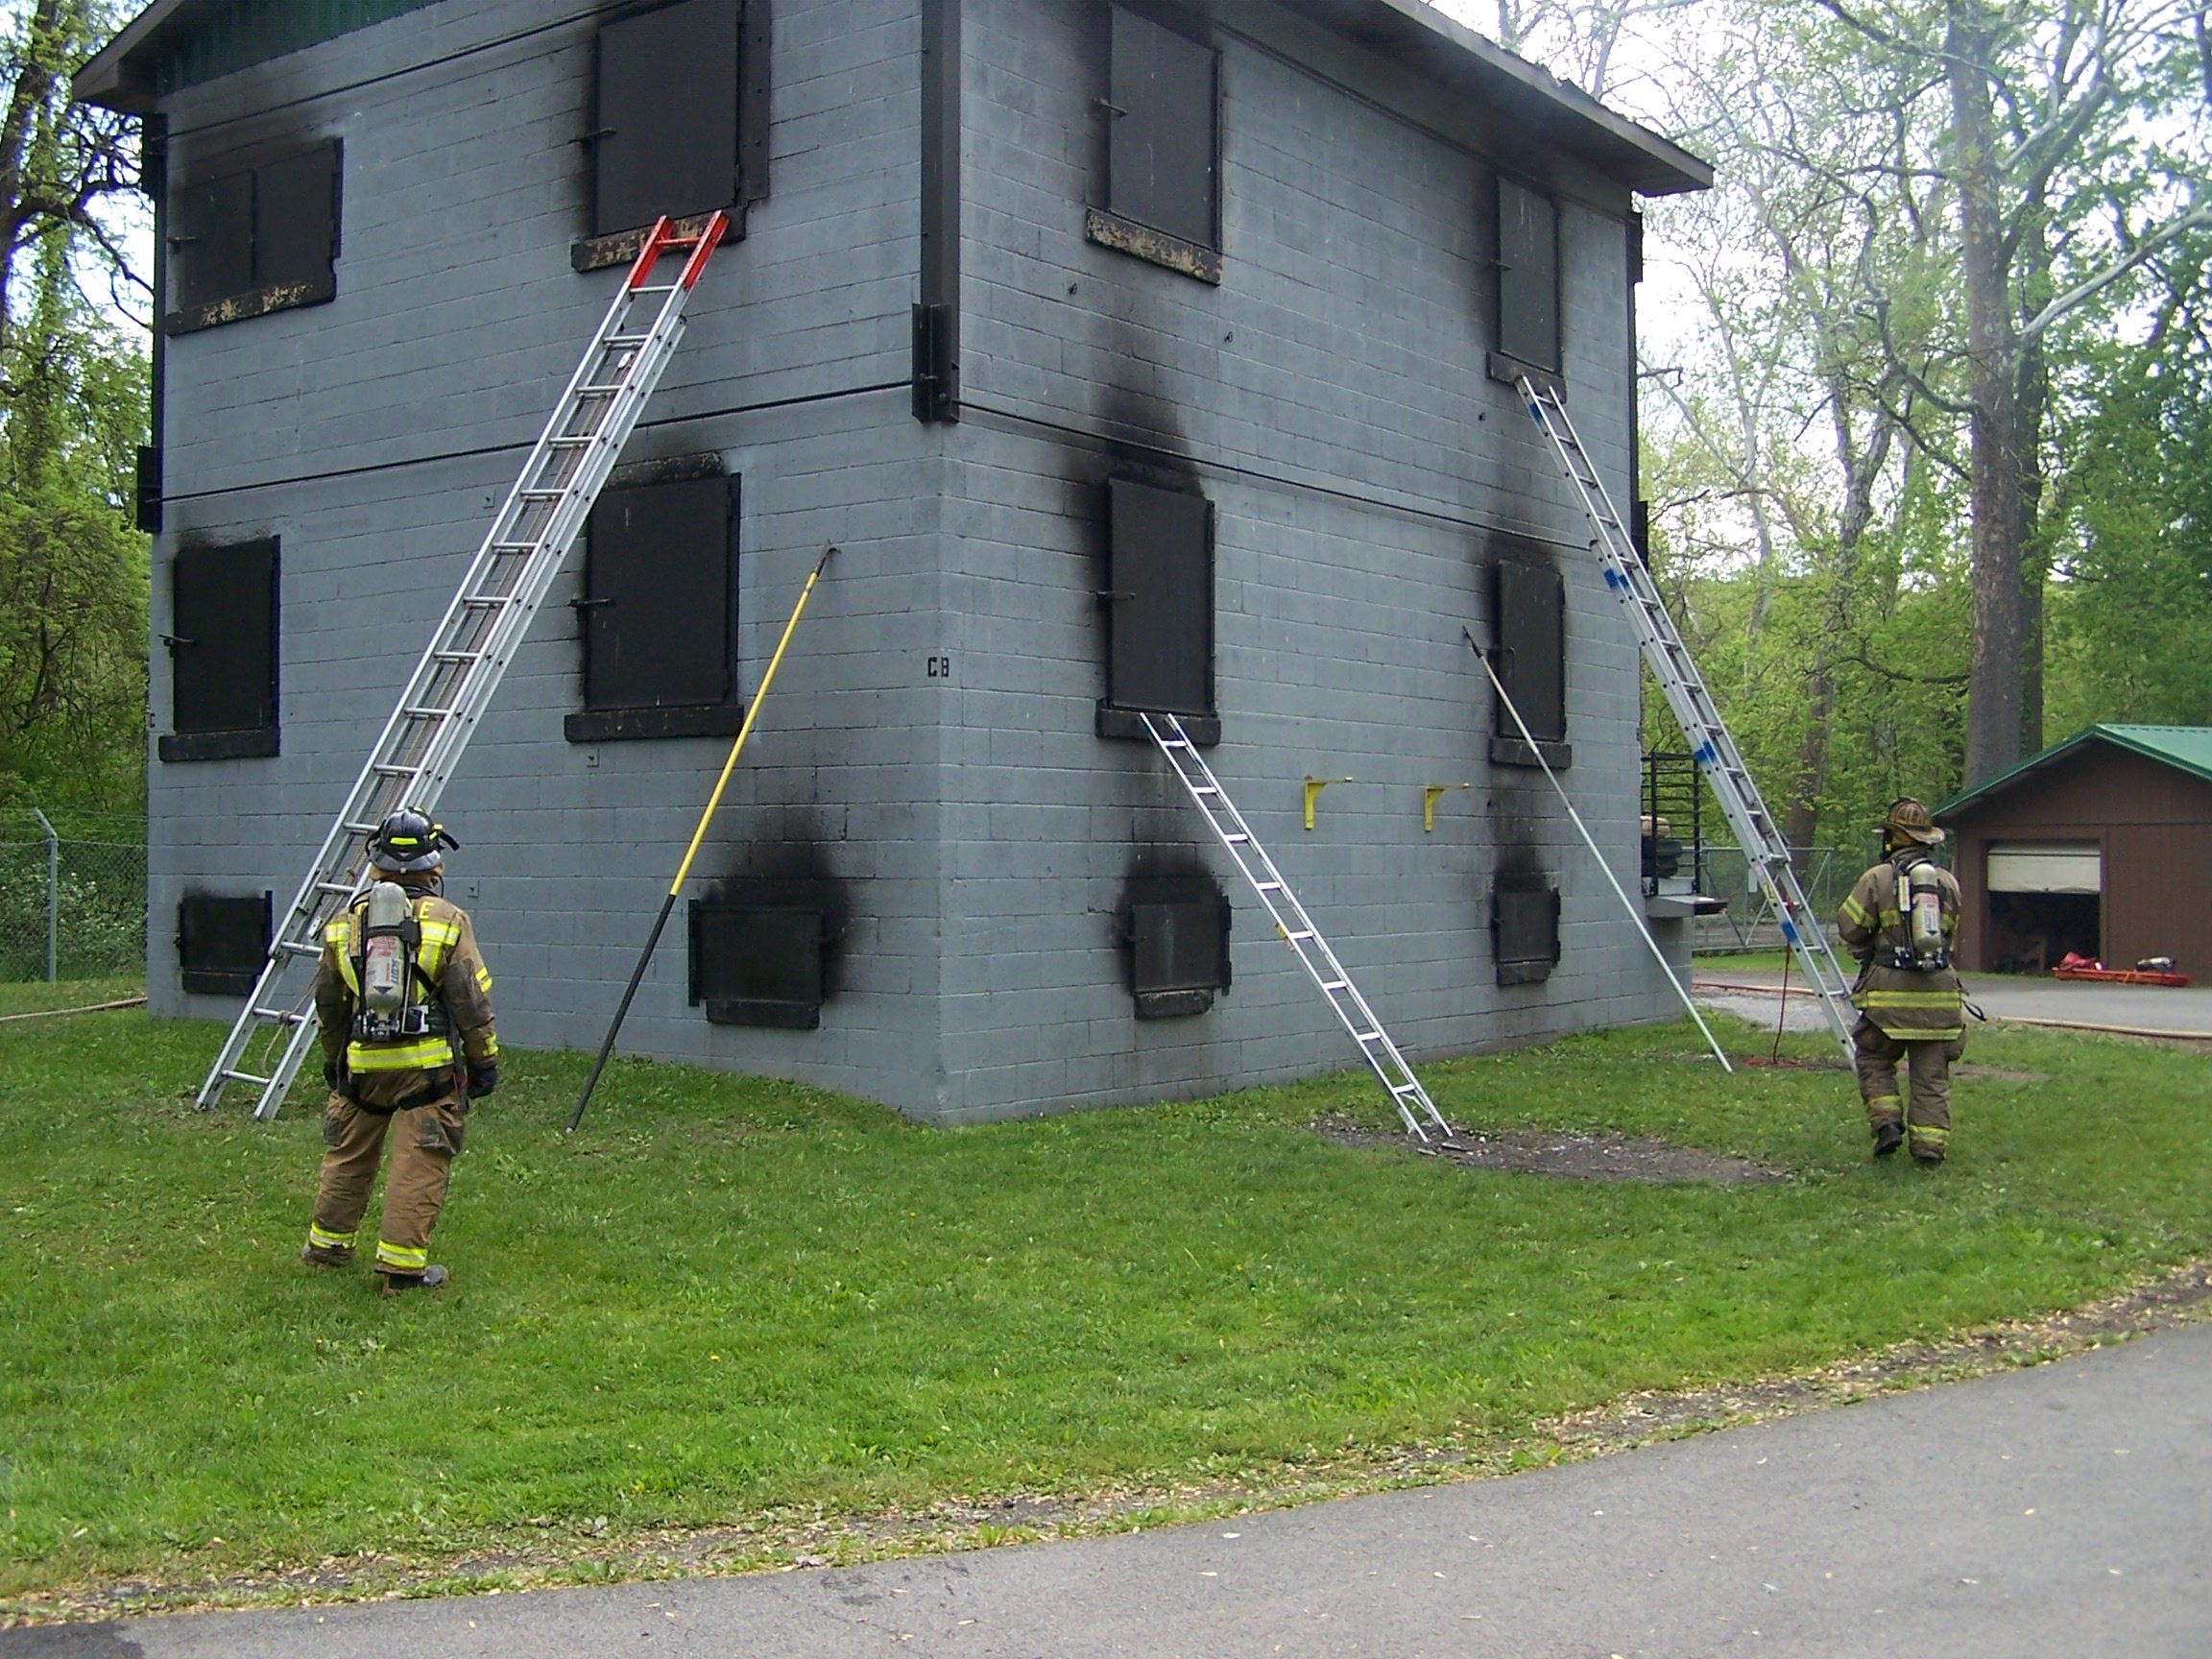 Two firefighters stand in front of a training facility with three ladders rested against it.